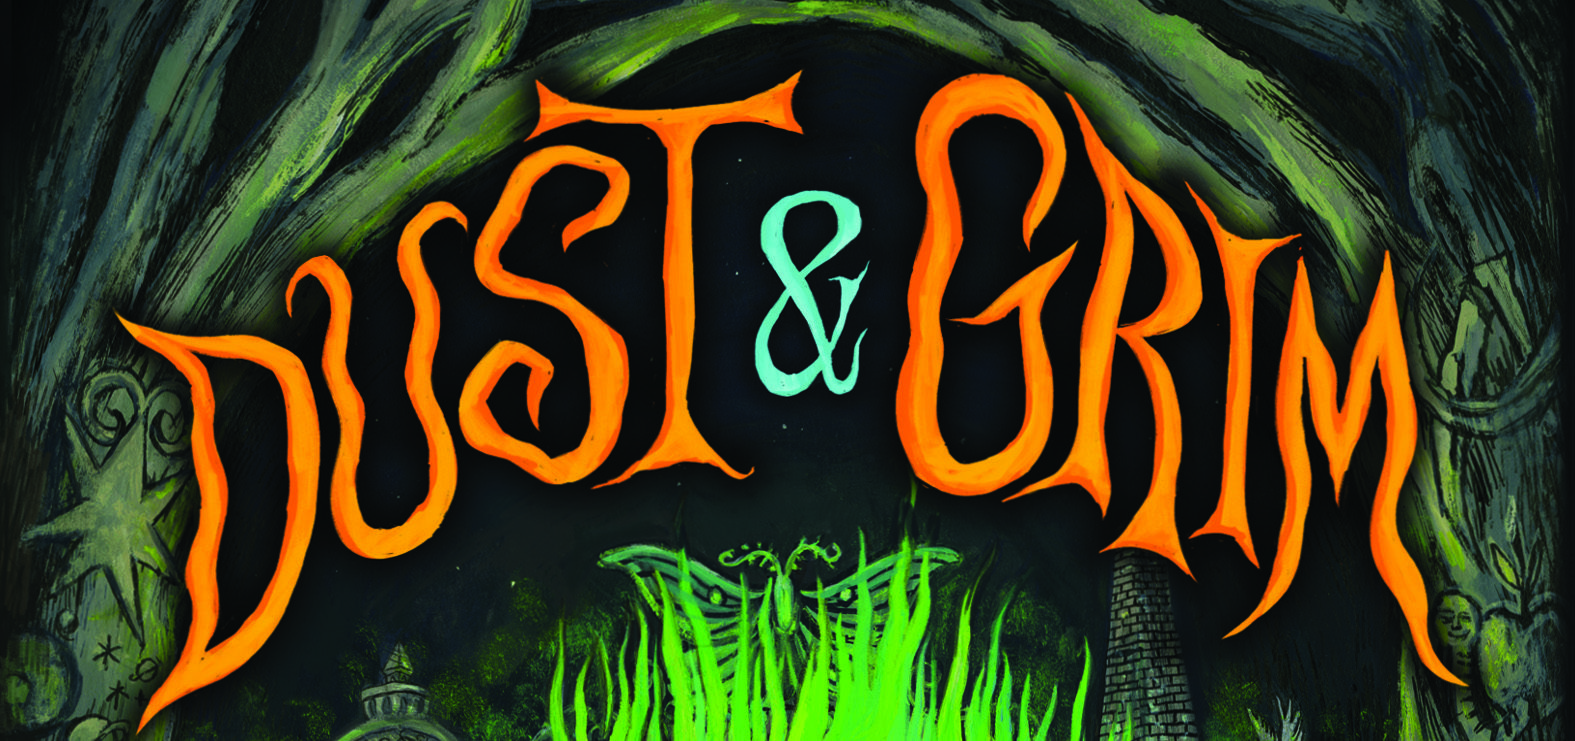 Cover Reveal: Dust & Grim!